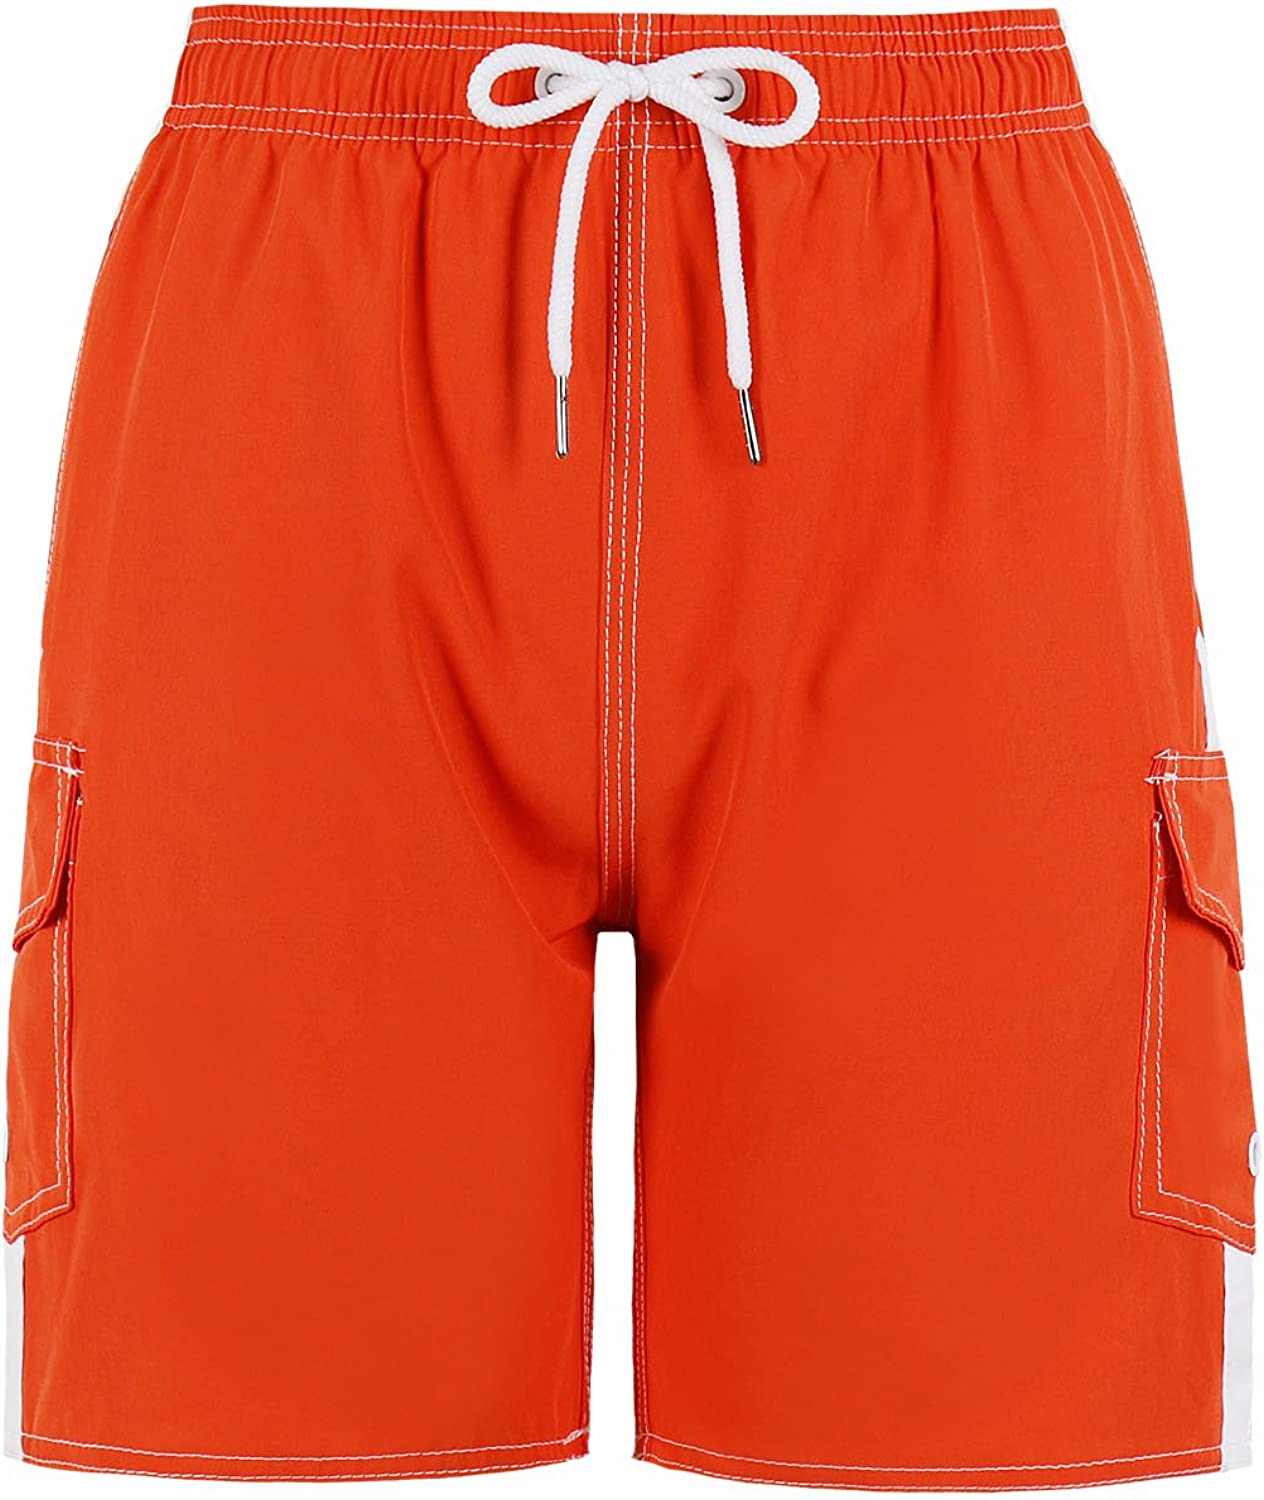 QRANSS Boys Kids Shark Printed Swim Trunks Board Shorts with Pockets: Clothing